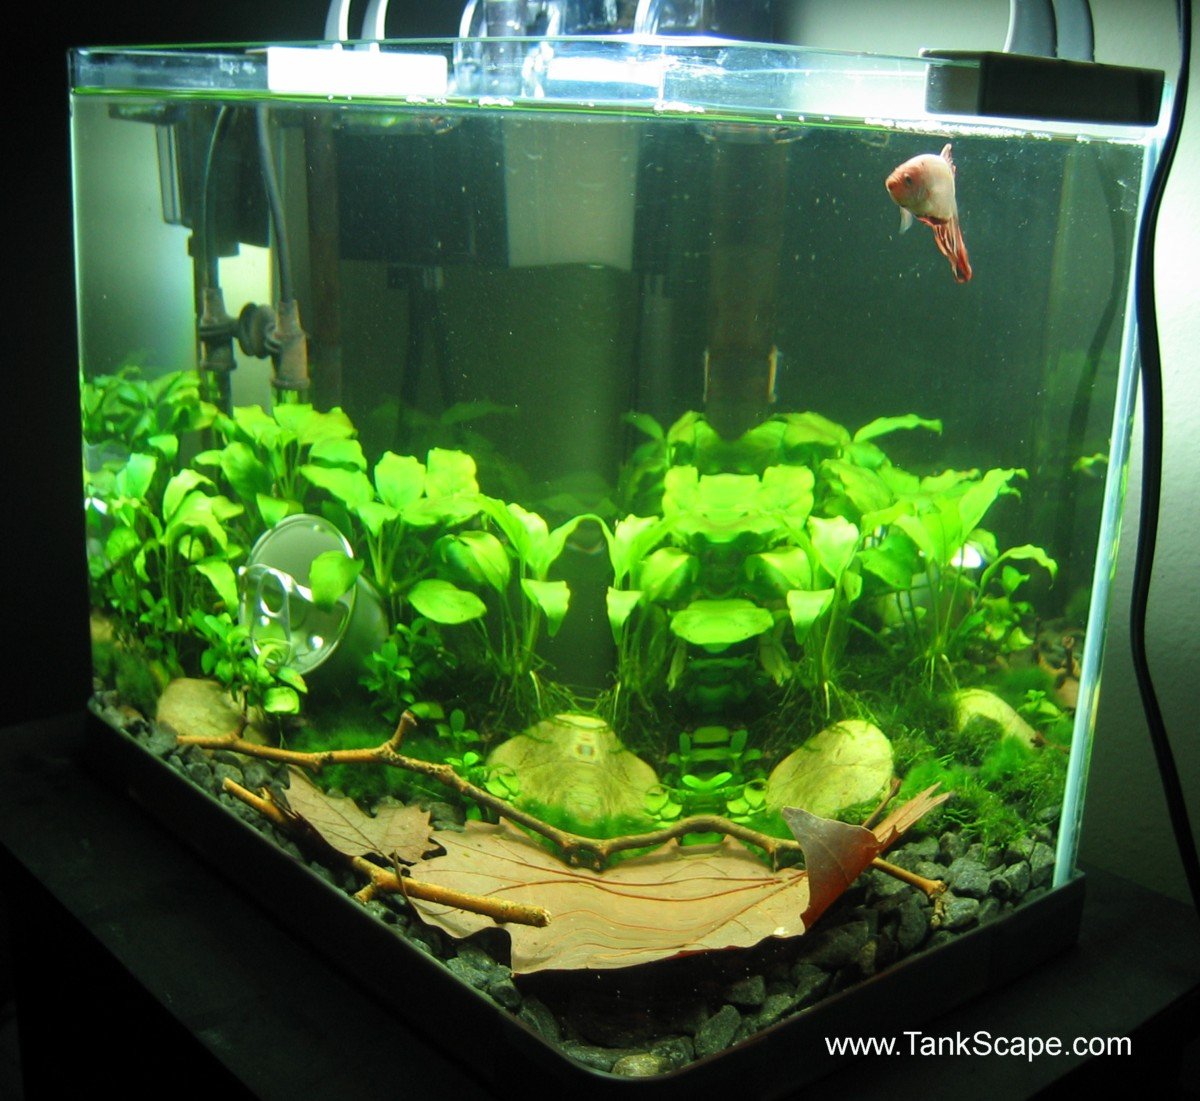 Betta fish tank setup ideas that make a statement for 10 gallon fish tanks